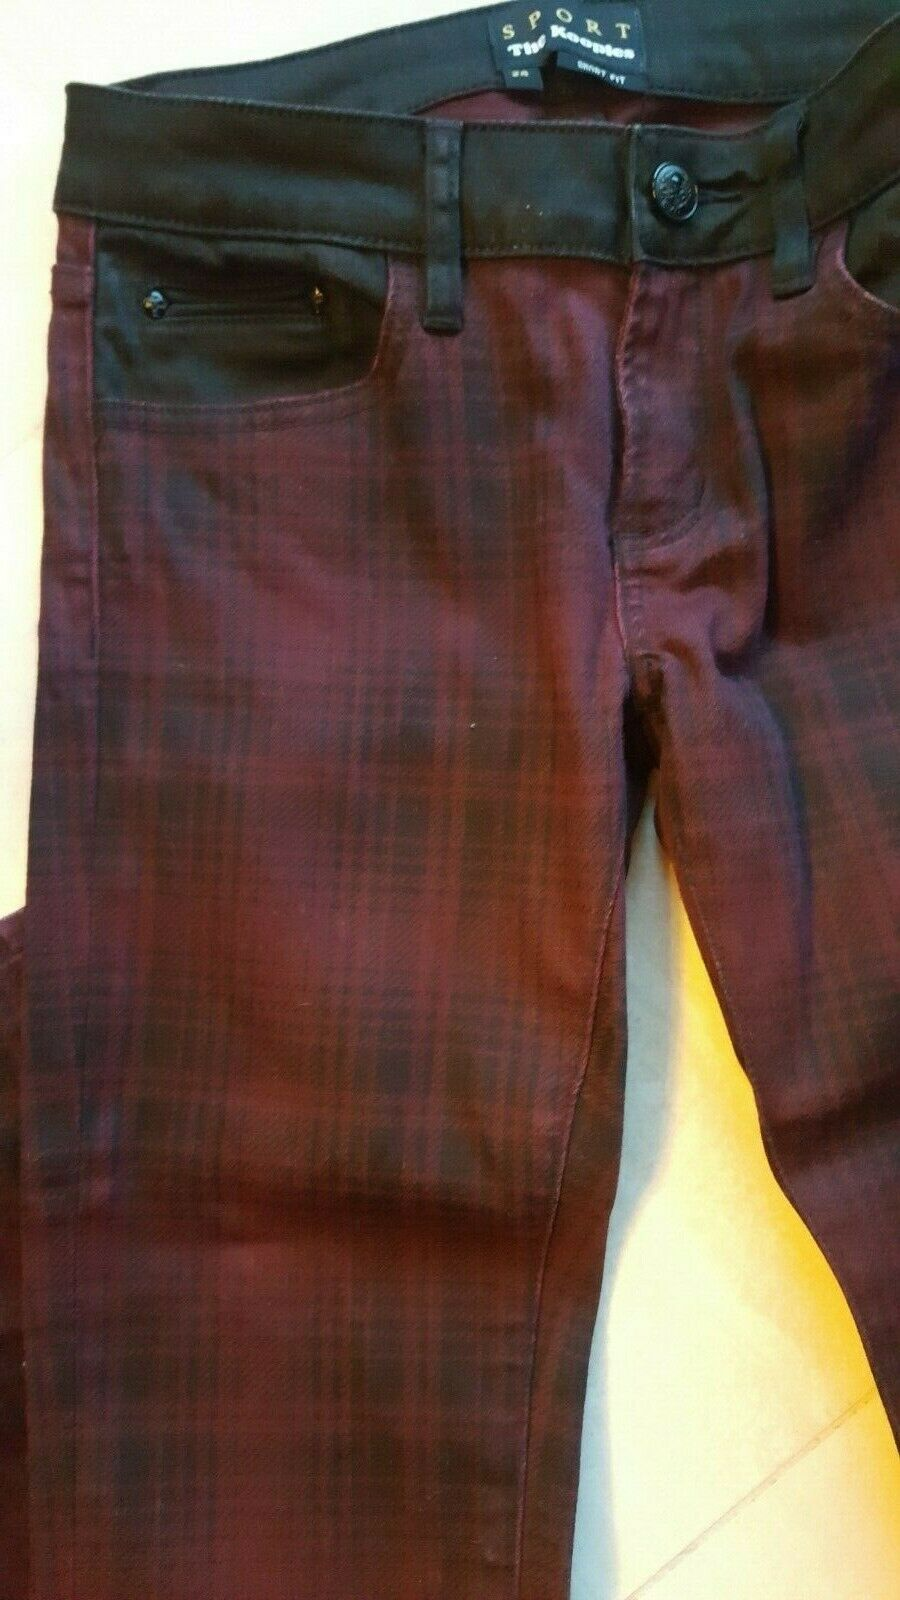 PANTALON SLIM THE KOOPLES BORDEAUX TARTAN Dimensione 24